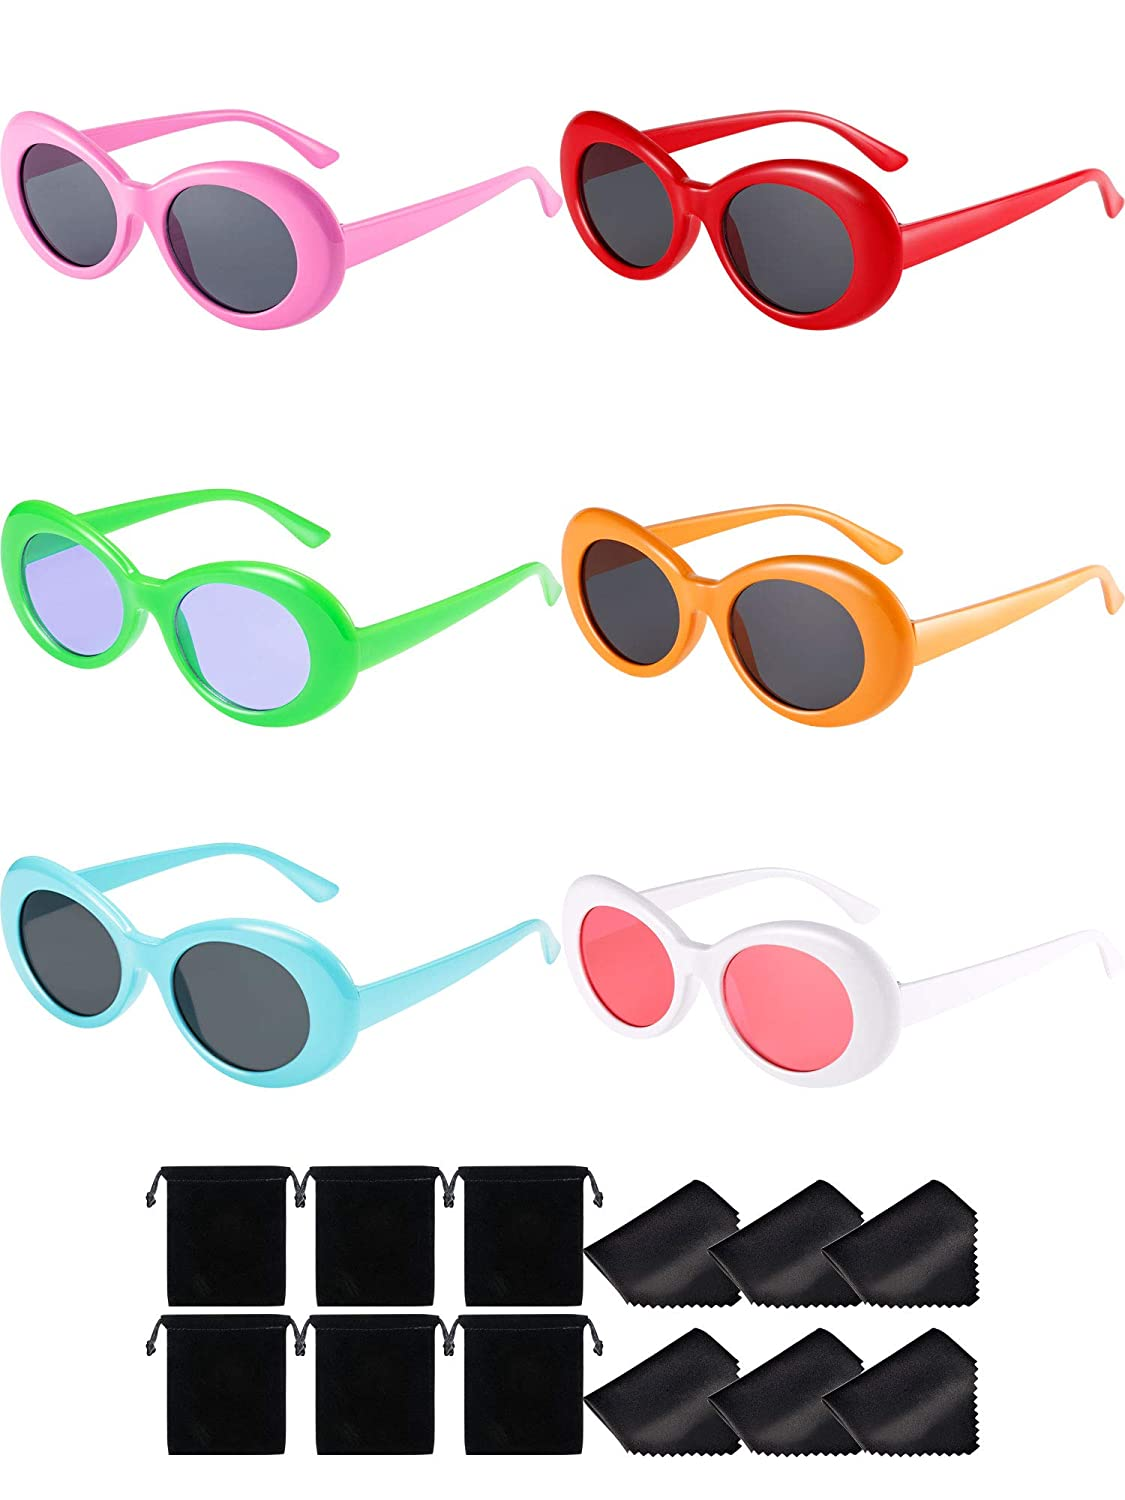 Blulu 6 Pieces Clout Oval Goggles Round Mod Thick Frame Retro Round Lens Sunglasses Women Men Girl Boy Teenagers with 6 Lens Cloth and 6 Bags